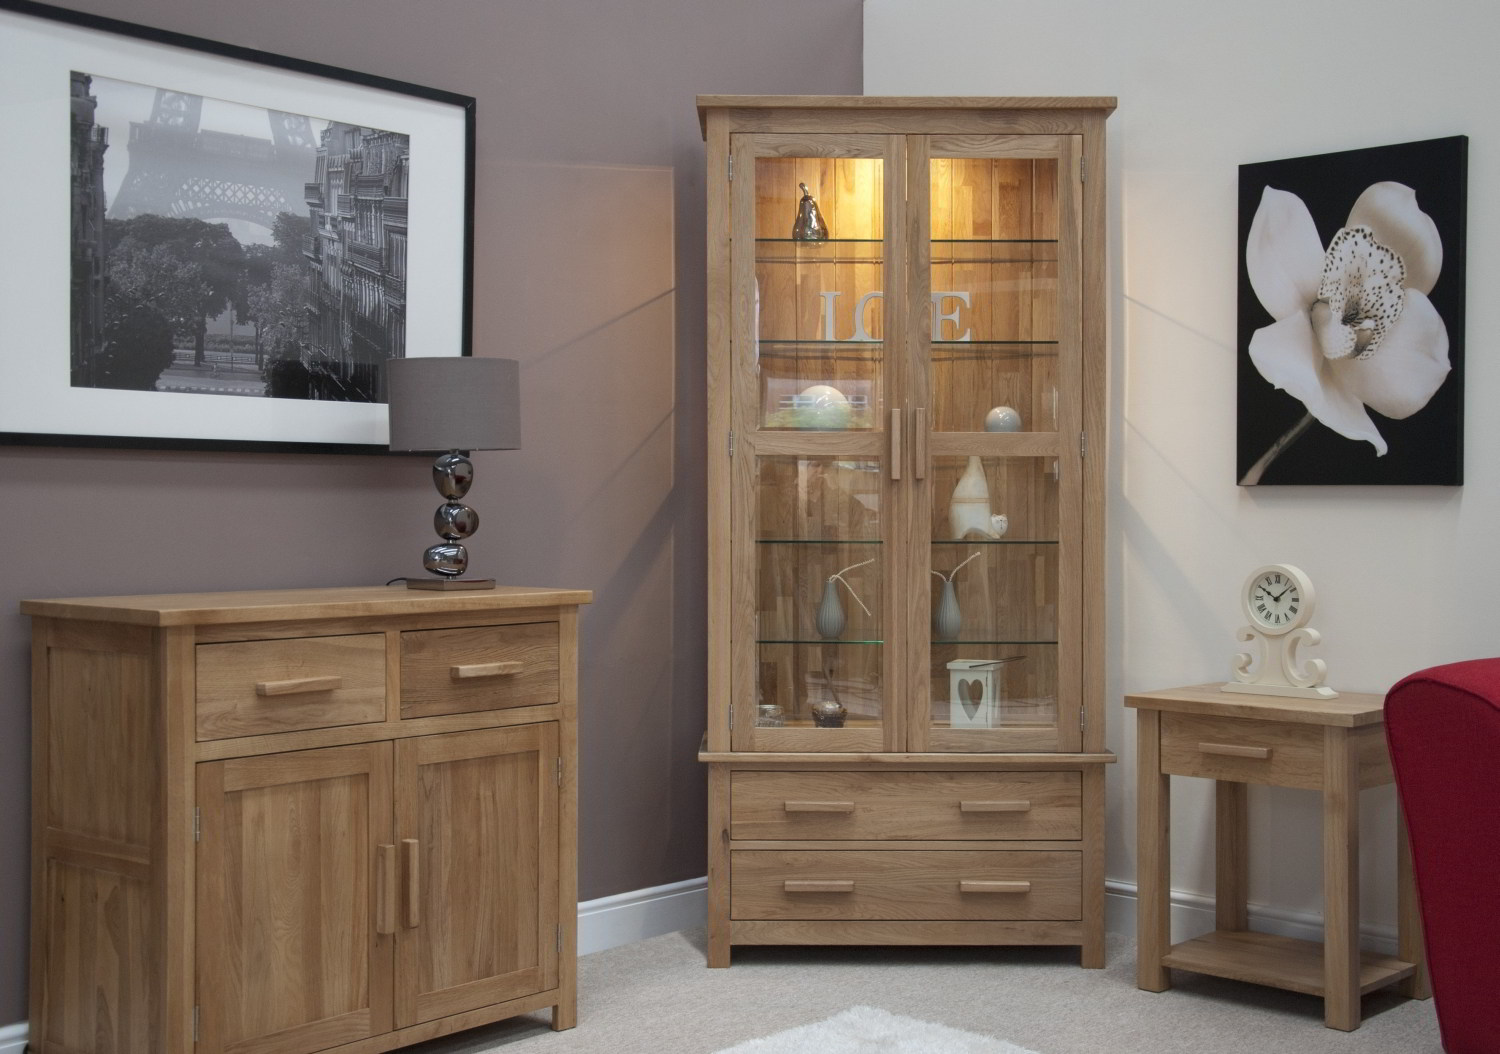 Living Room Cabinet : Eton solid oak living room furniture glazed display ...